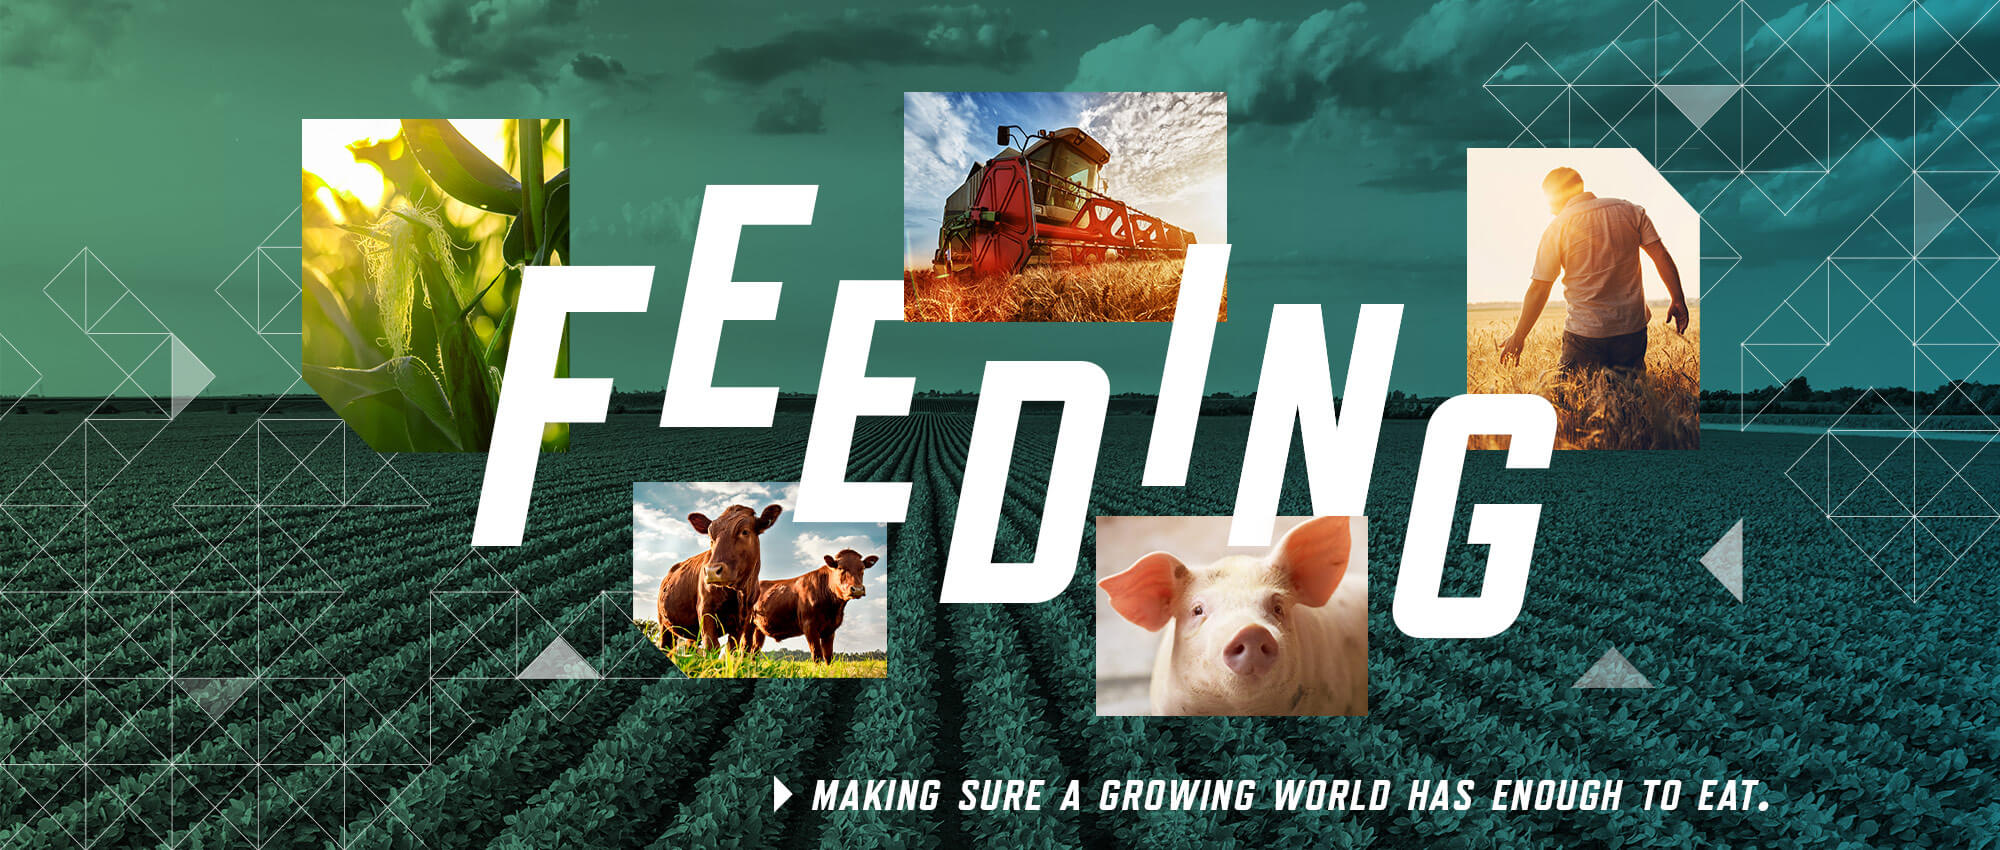 feeding: making sure a growing world has enough to eat. Images of wheat, corn, fields, cows, pigs and farm equipment.